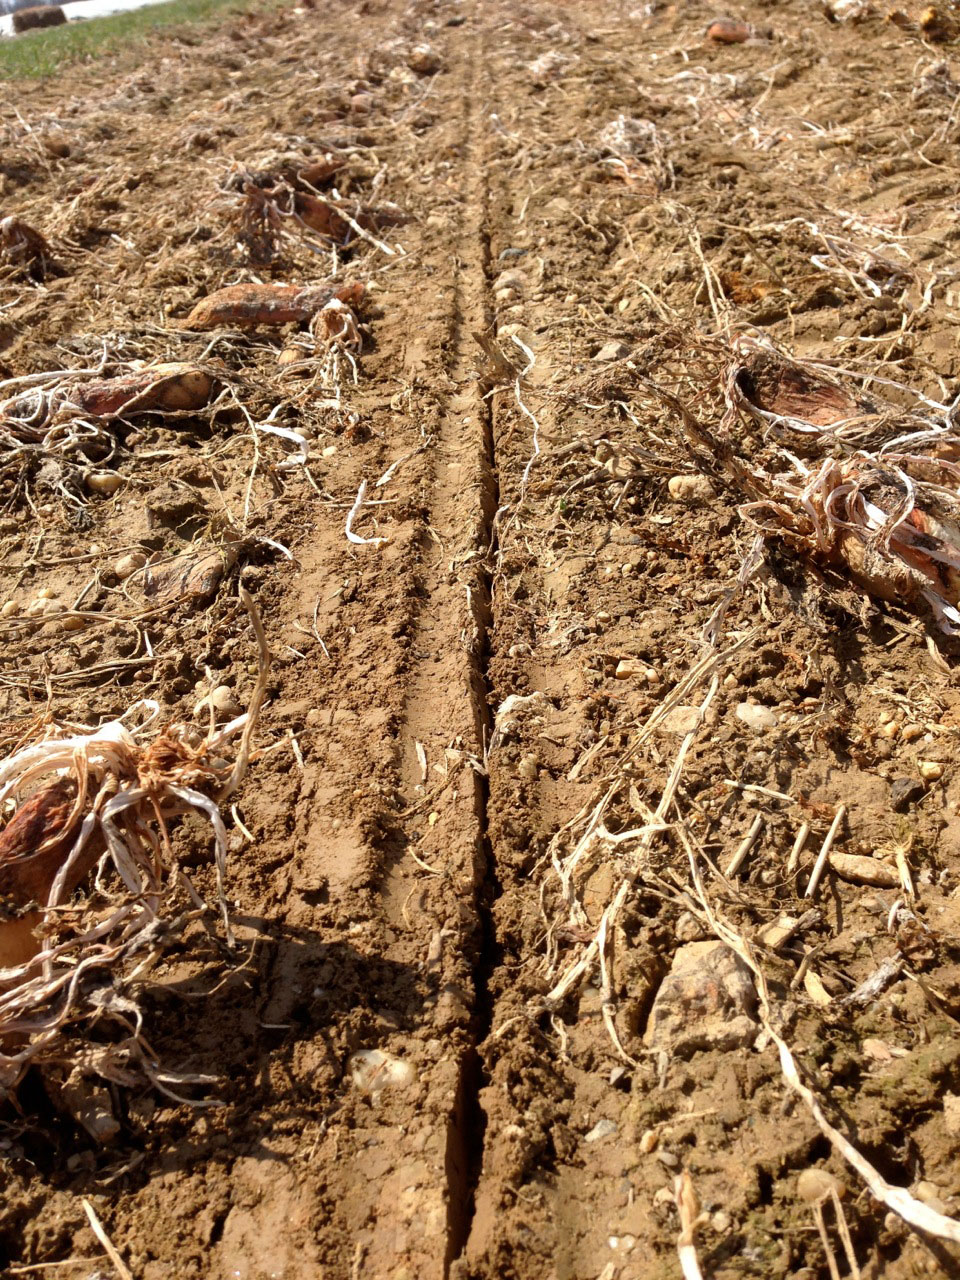 Cultivating Questions No-till No-herbicide Planting of Spring Vegetables Using Low Residue Winter-killed Cover Crops